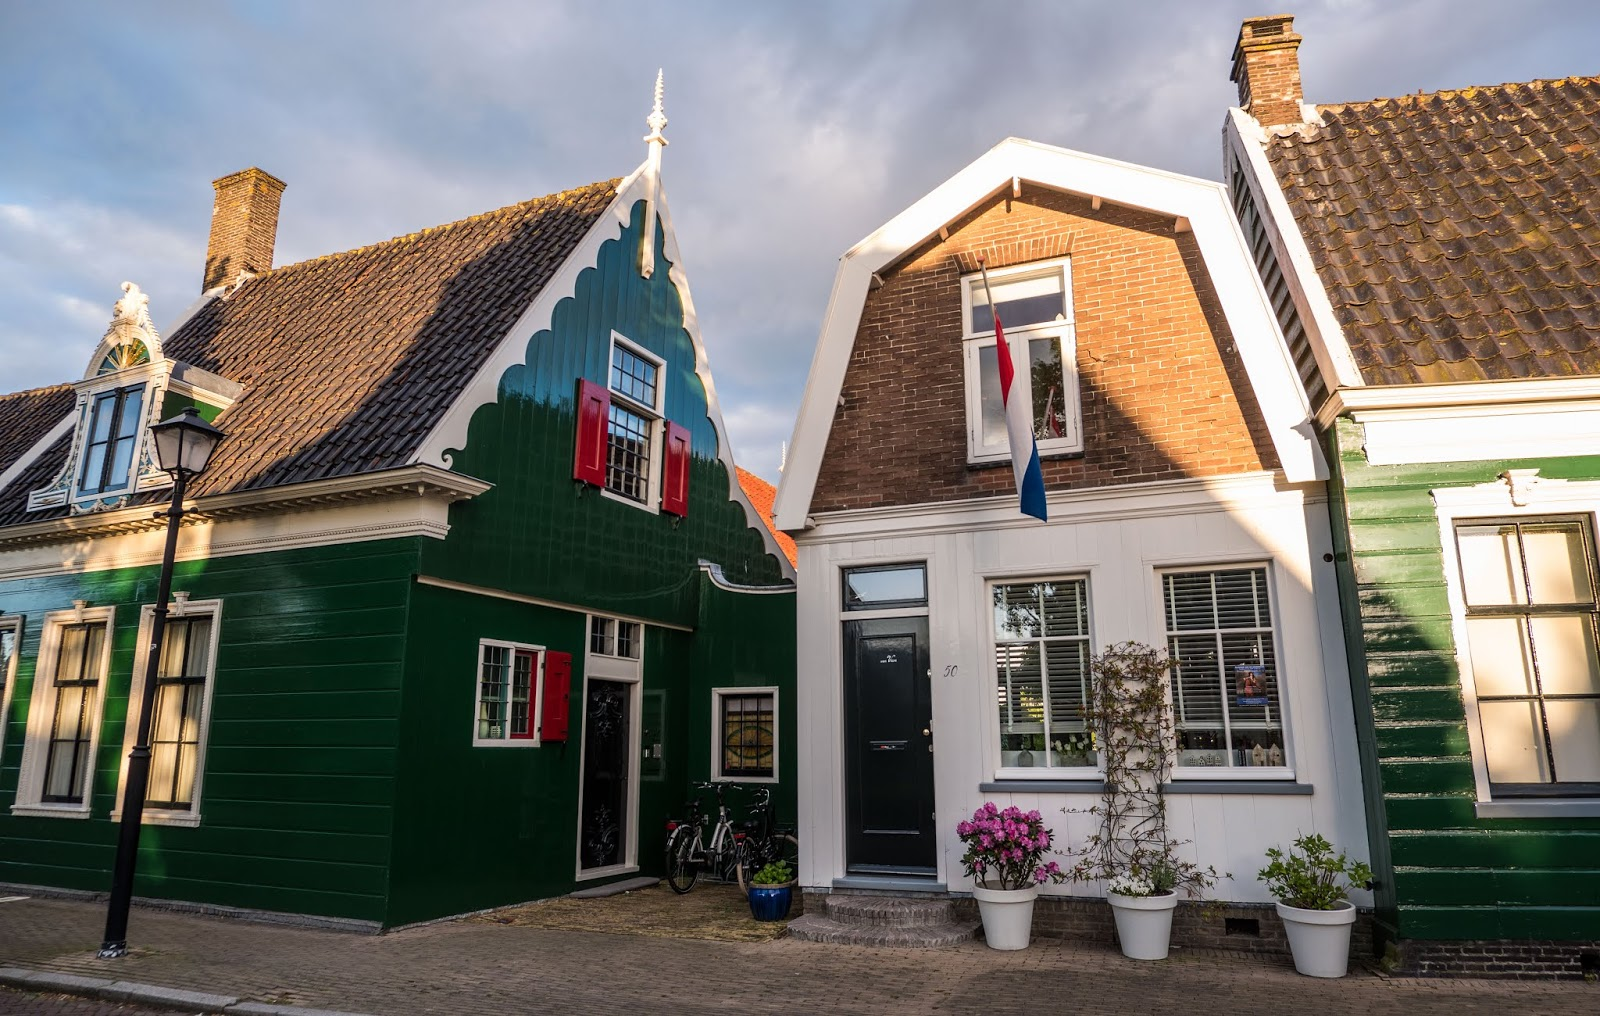 Houses in Zaandijk, The Netherlands